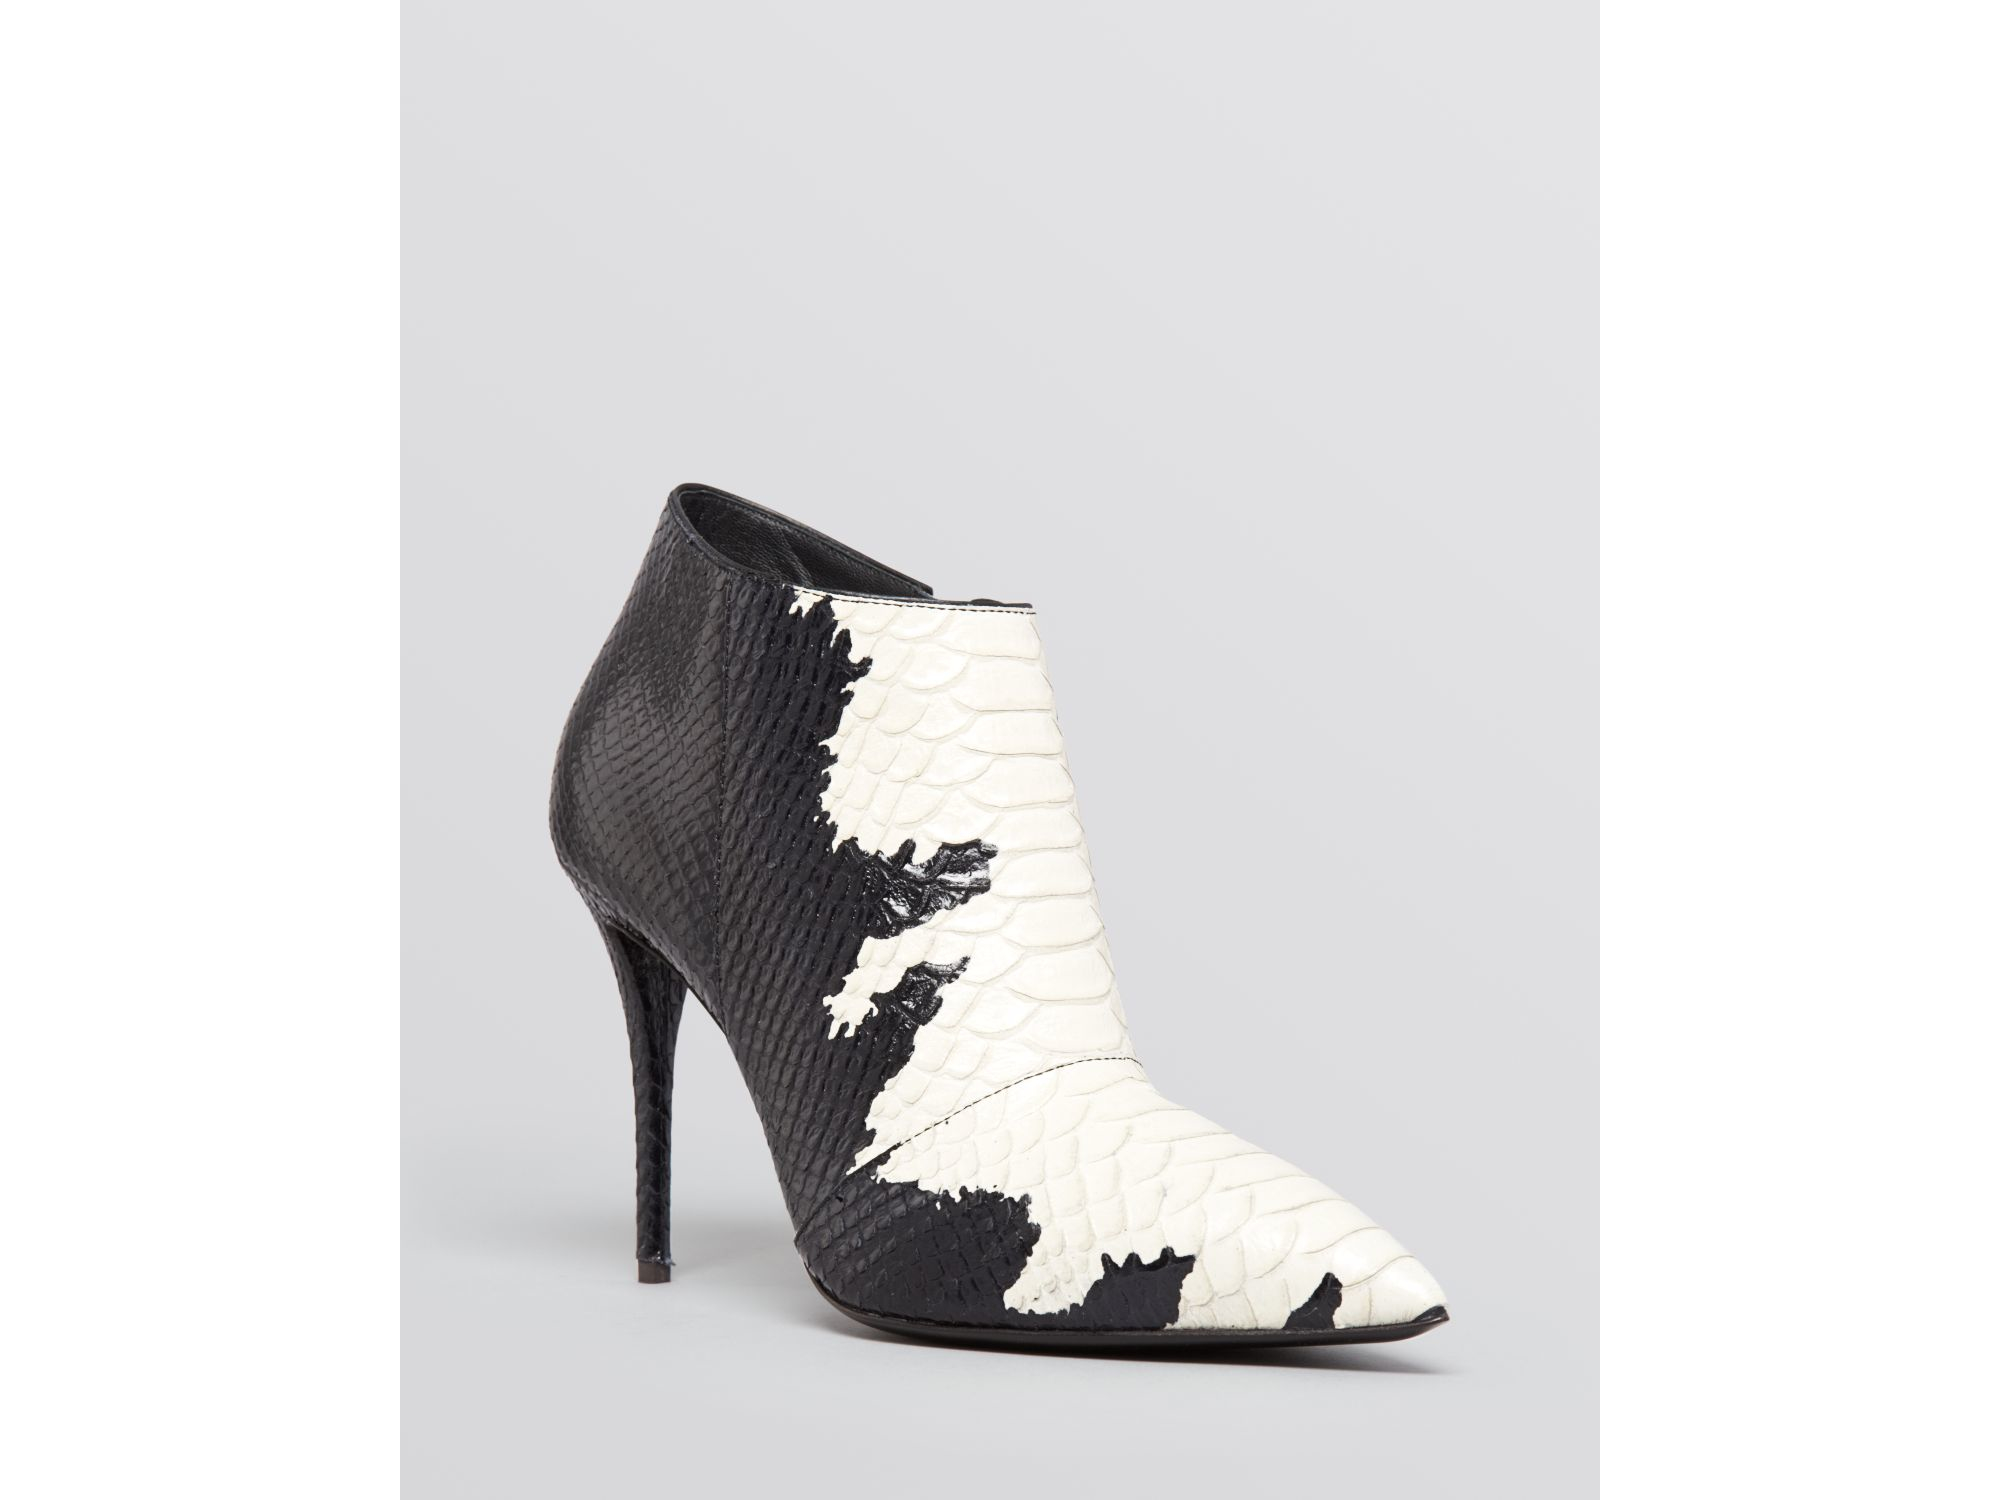 d2d44d56b58 Lyst - Giuseppe Zanotti Pointed Toe Booties - Yvette High Heel in Black